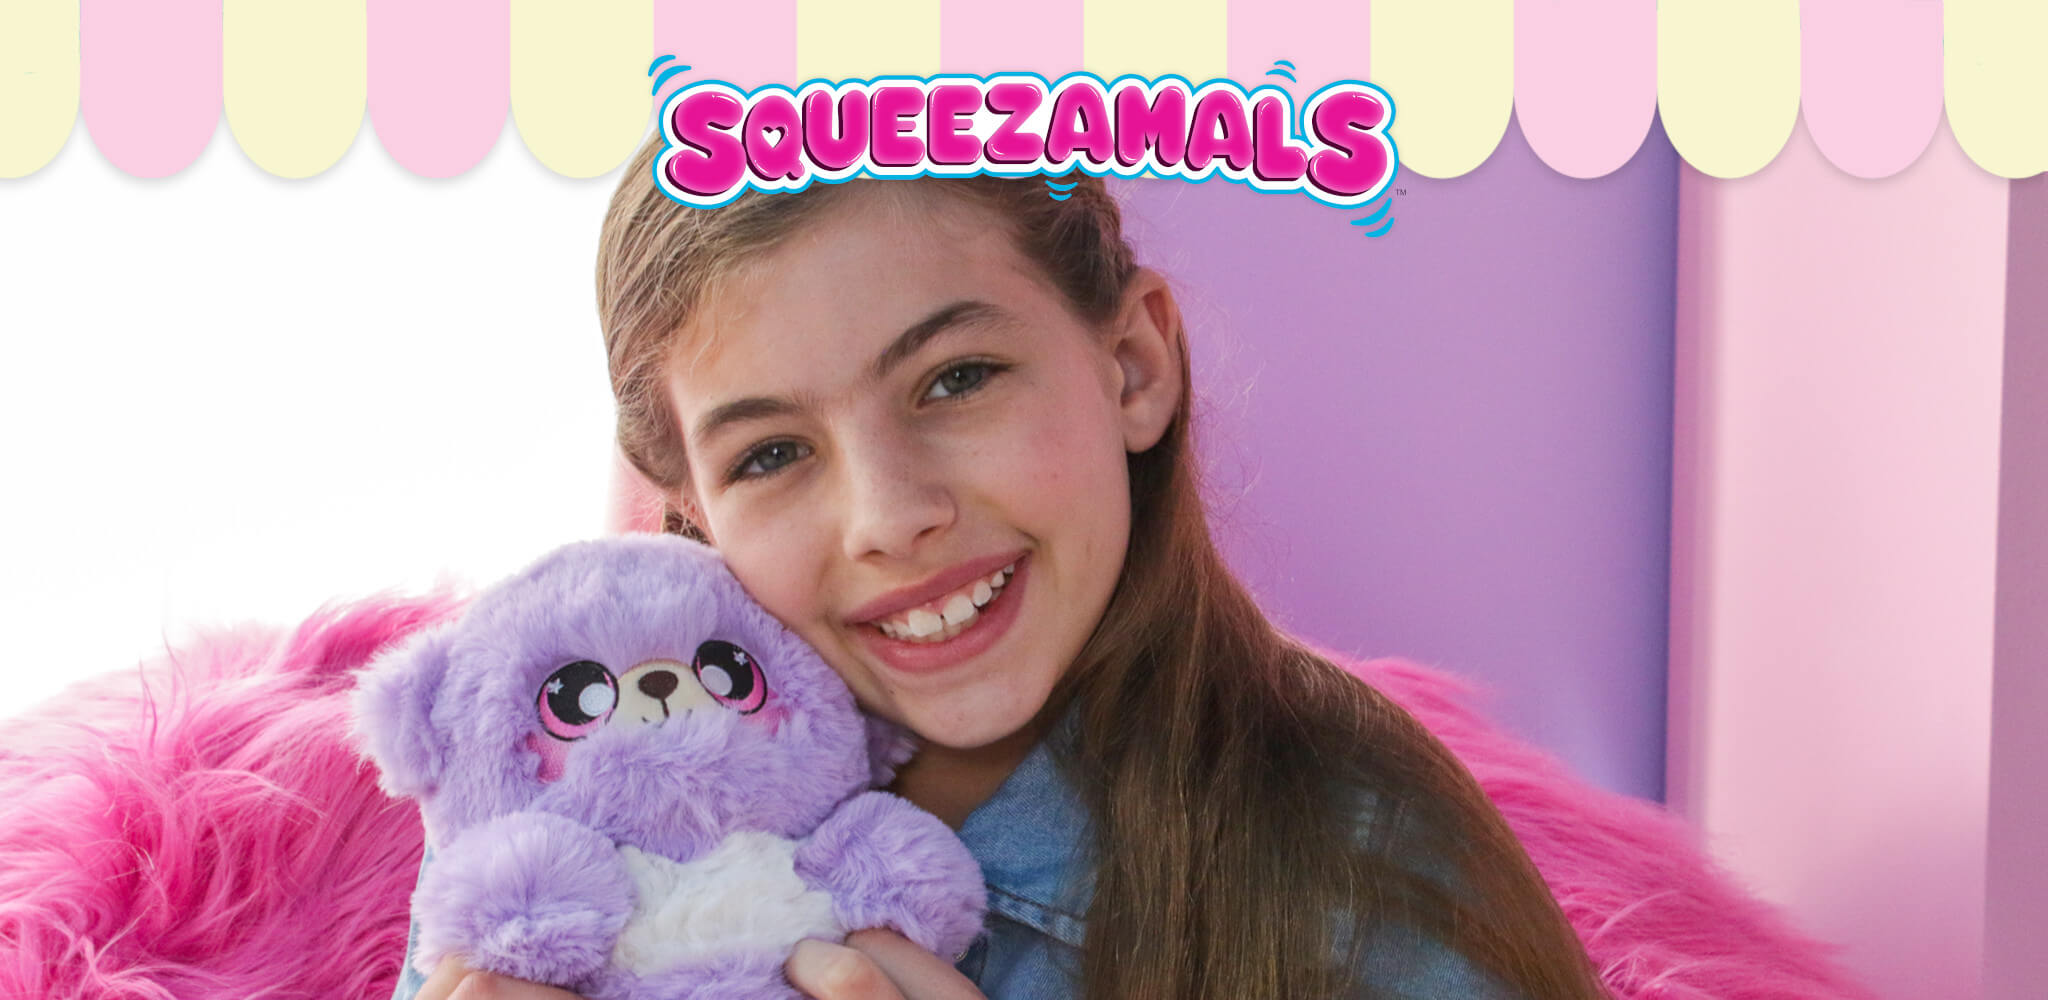 Squeezamals hero image